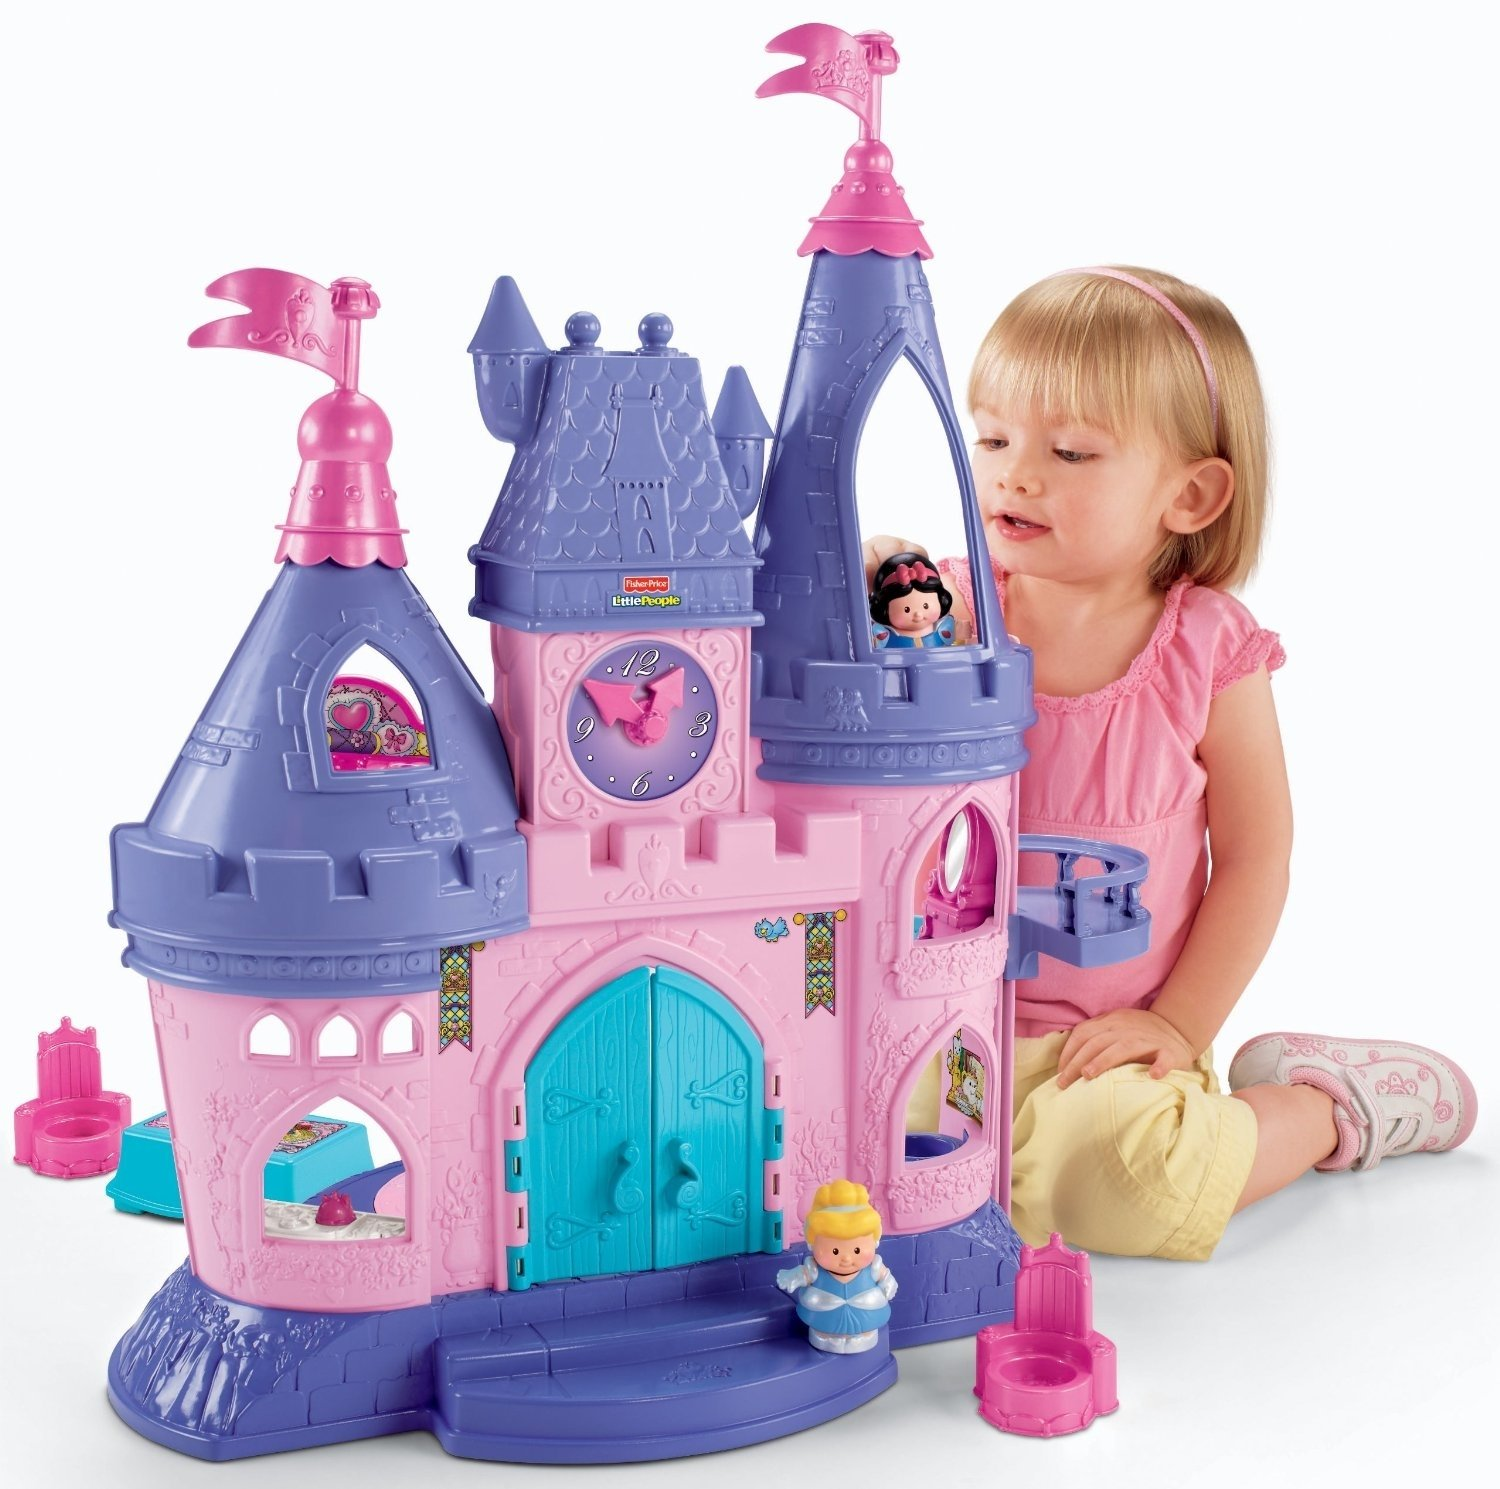 10 Spectacular Gift Ideas For 3 Yr Old Girl best gifts for 2 year old girls in 2017 disney princess songs 5 2020